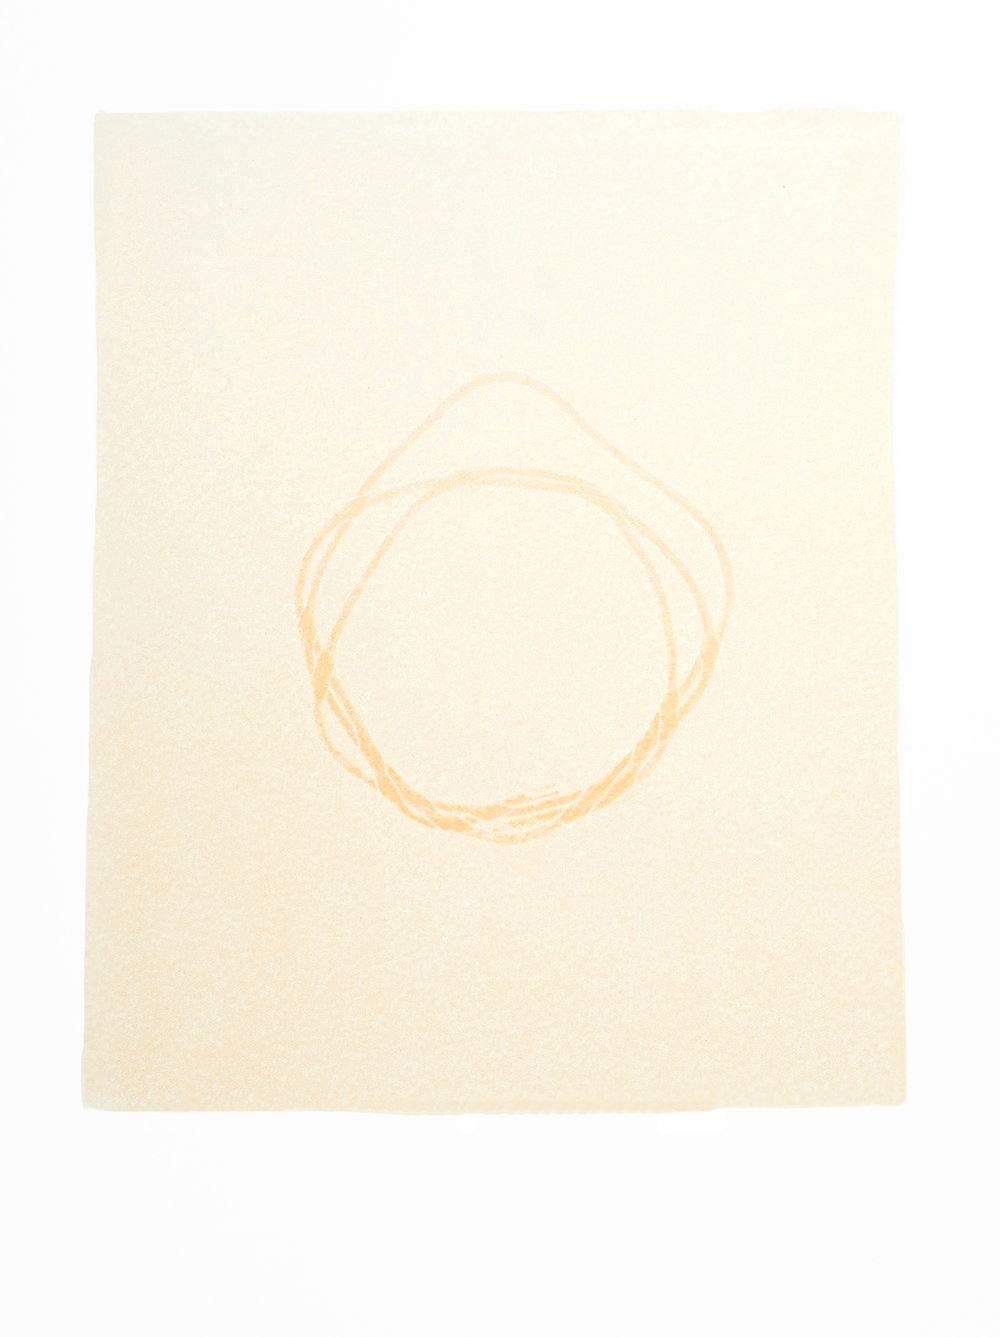 Untitled (yellow 2, from Overlap series)